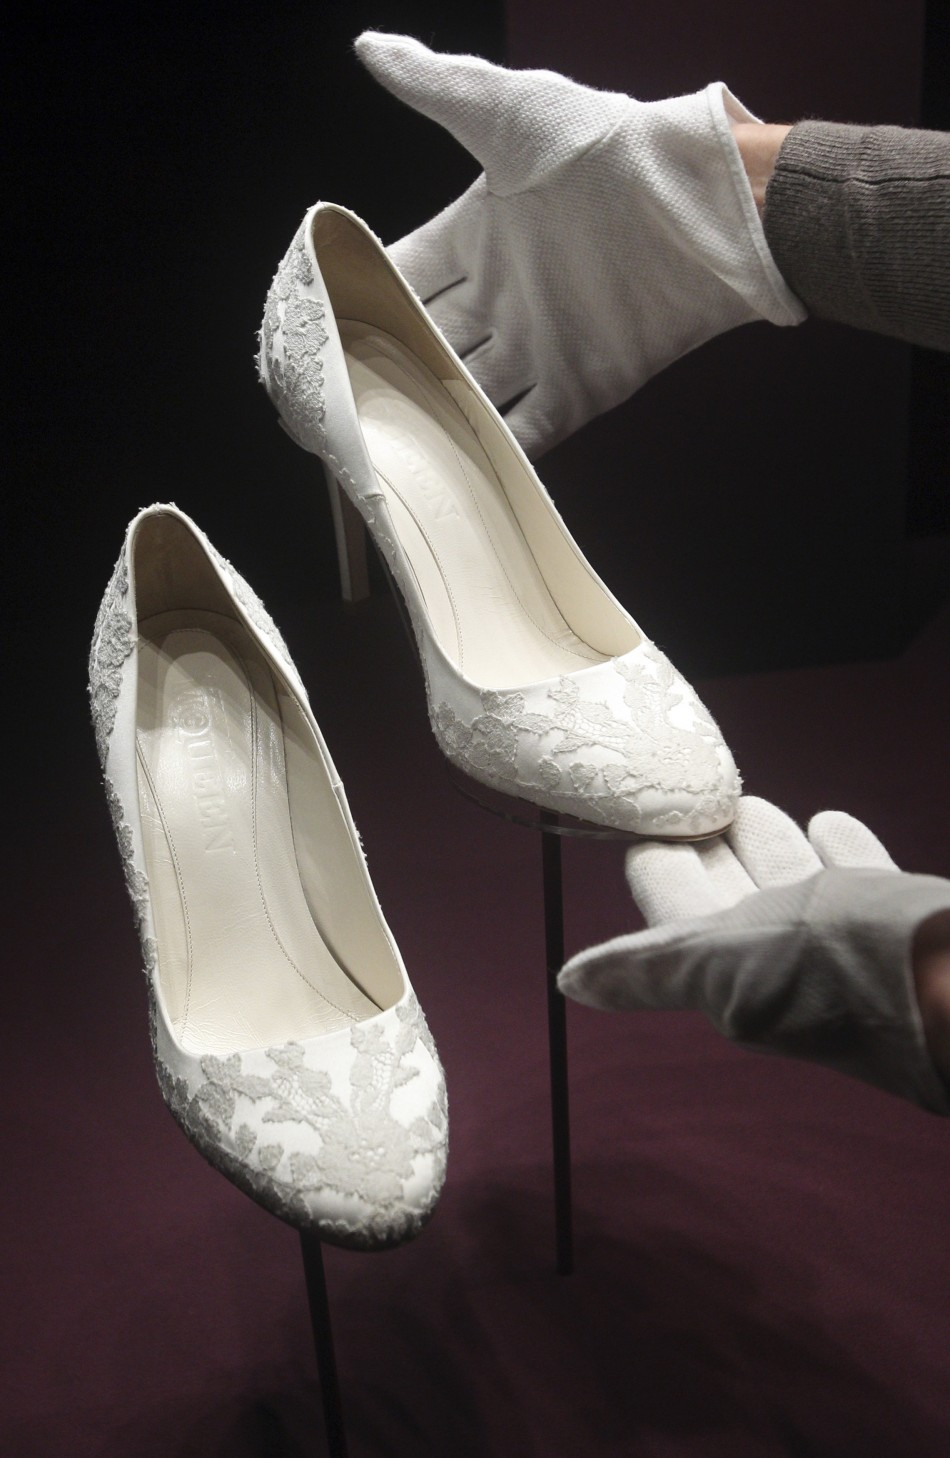 The bridal shoes of Britain039s Catherine, Duchess of Cambridge are seen at Buckingham Palace in London